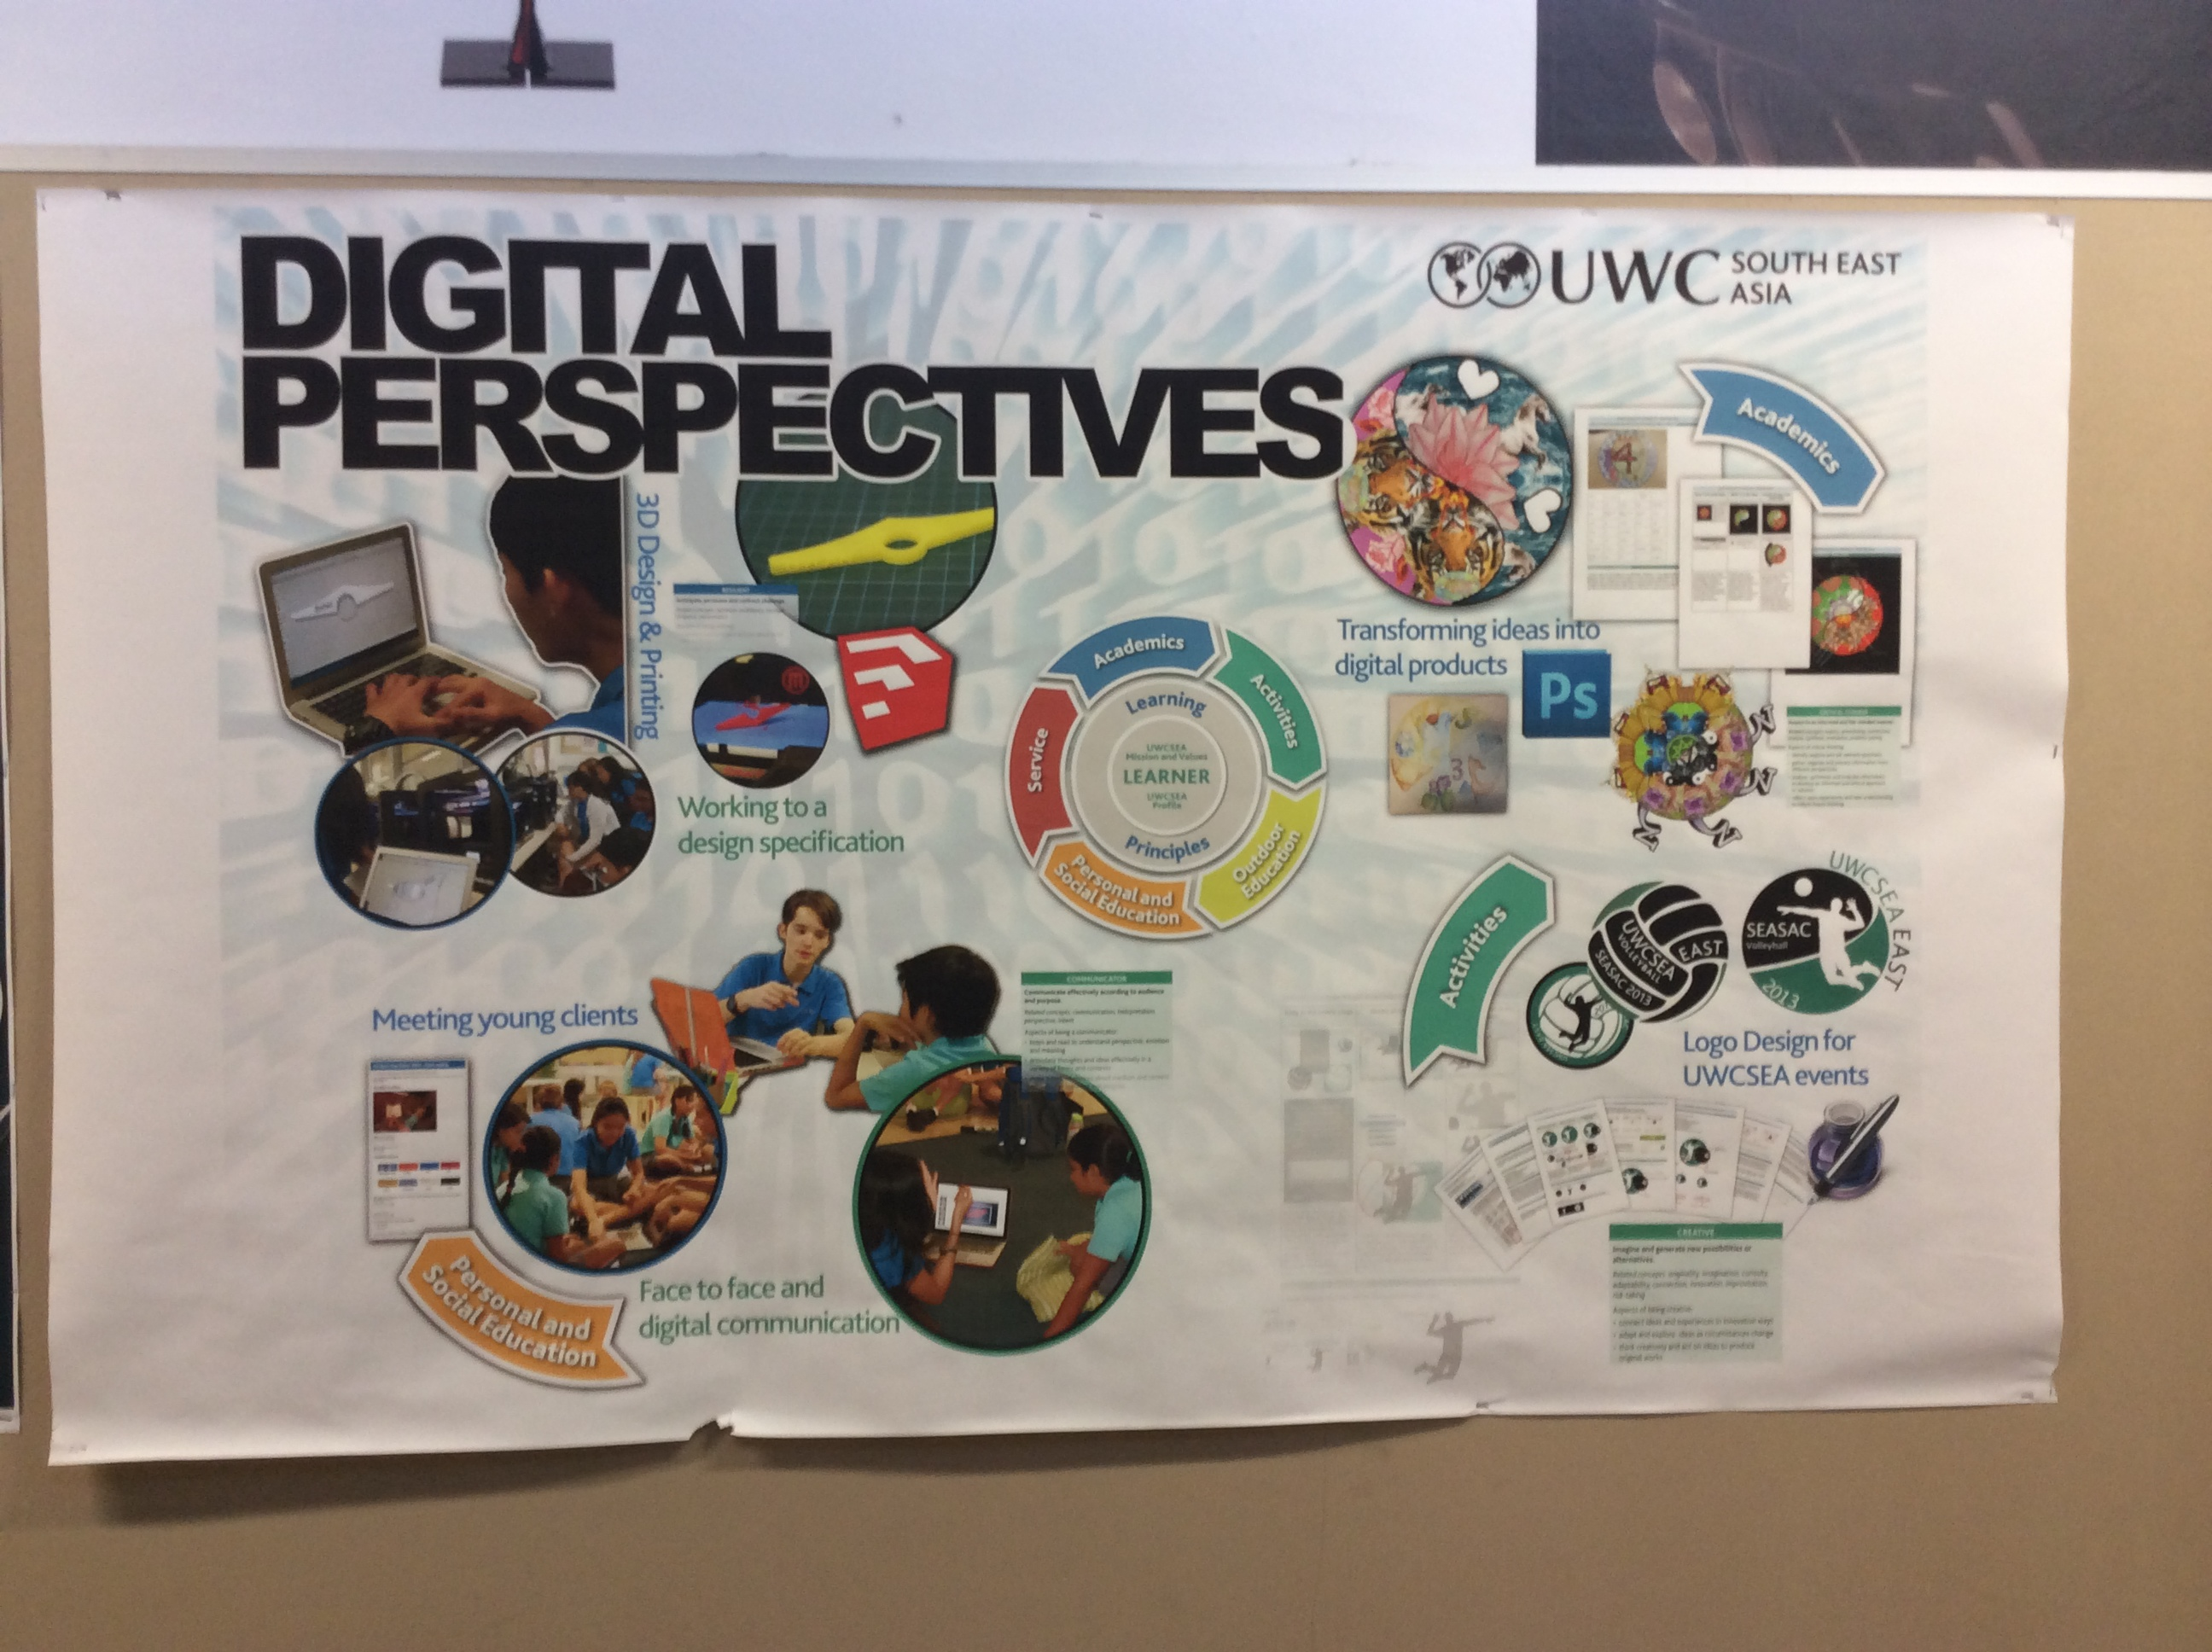 Digital Perspectives